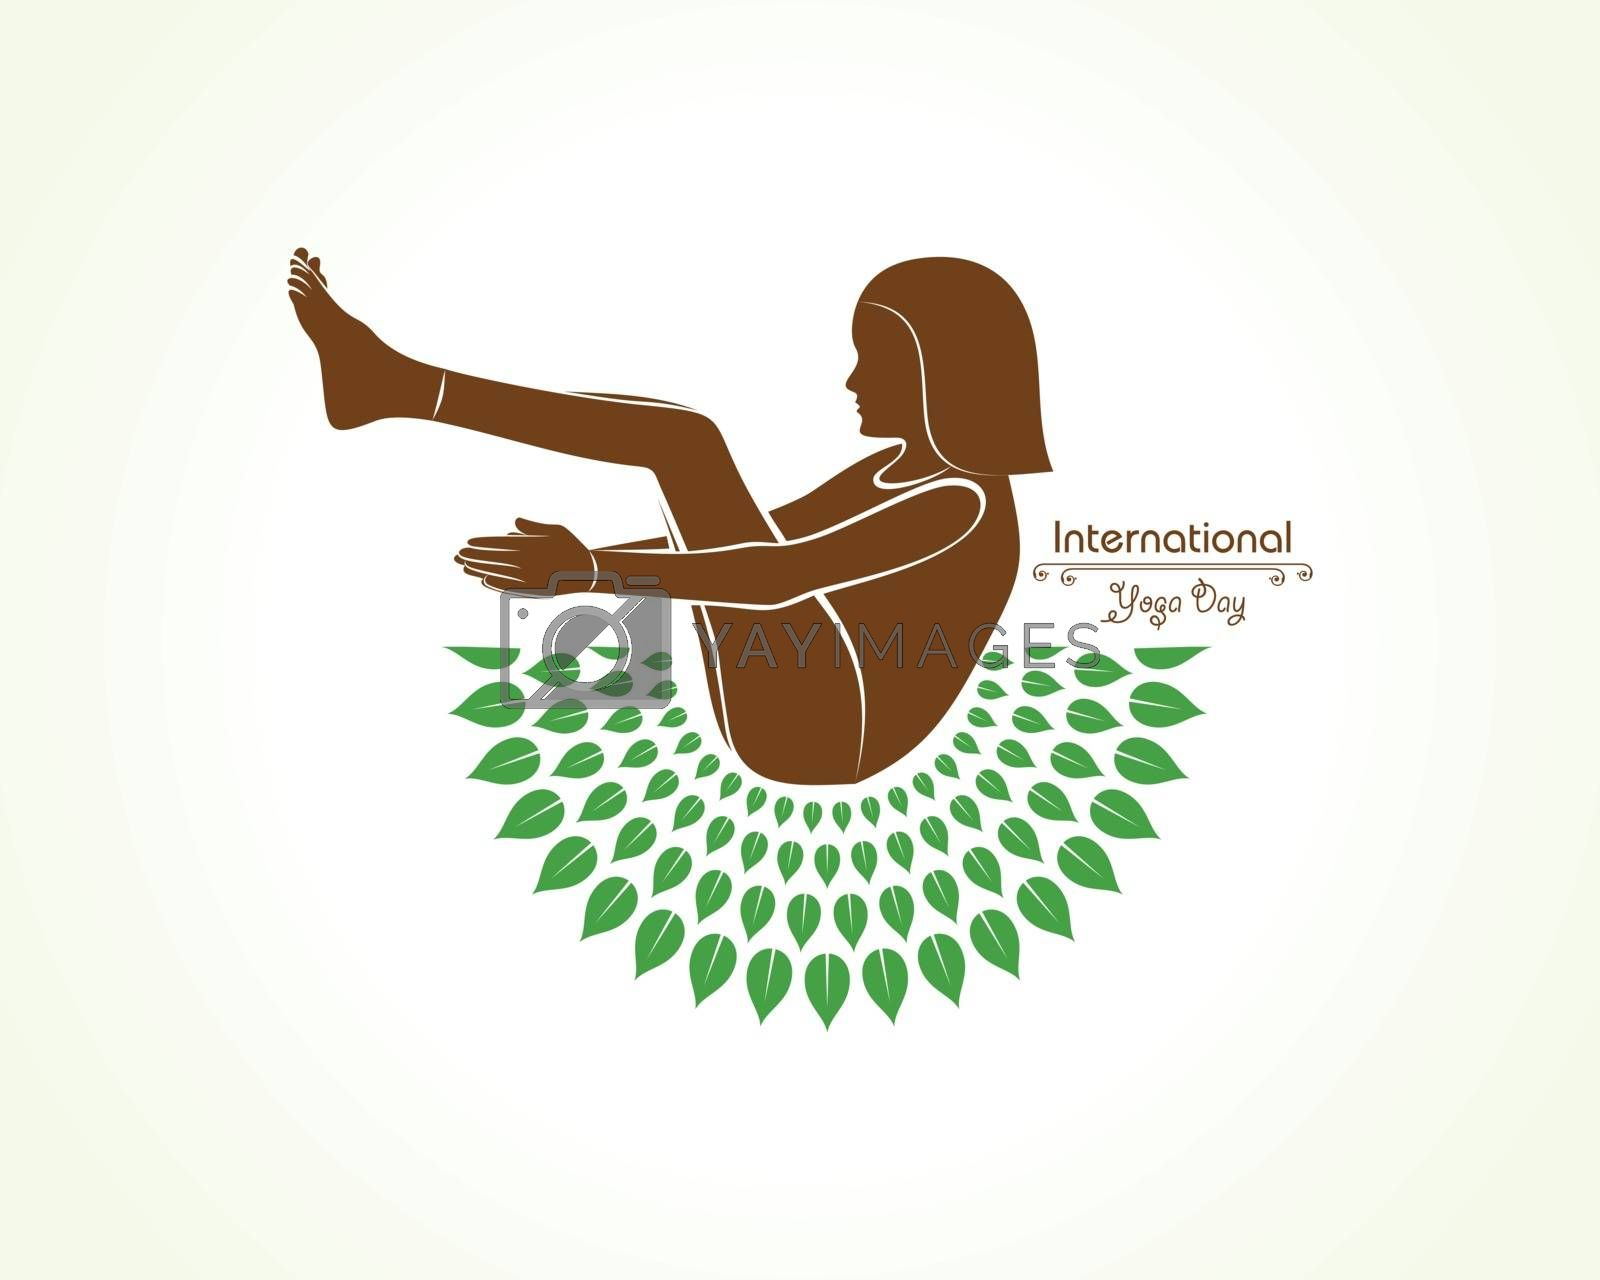 A Girl doing yoga for International Yoga Day observed on 21st June by graphicsdunia4you